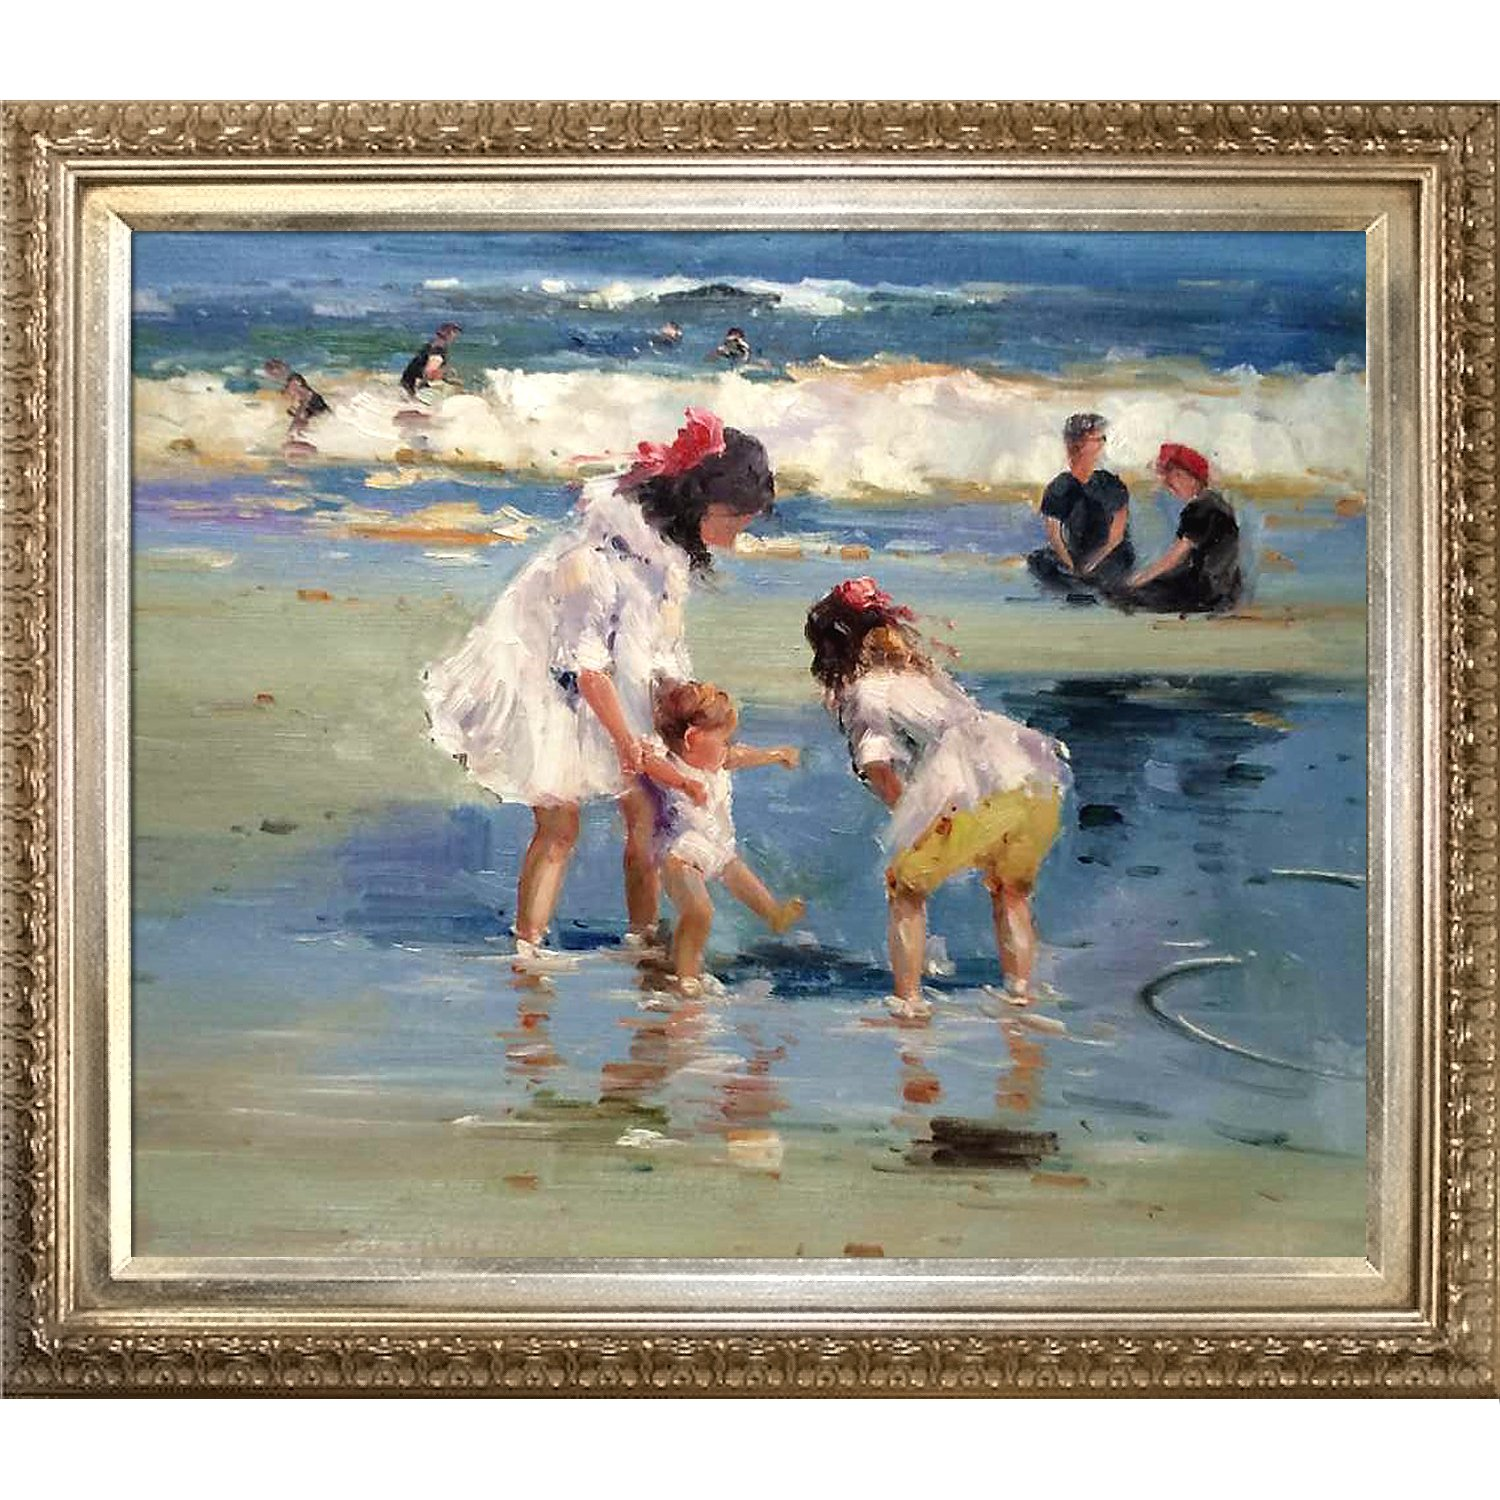 overstockArt Potthast Children Playing at the Seashore with Elegant Wood Frame Oil Painting, Champagne Finish